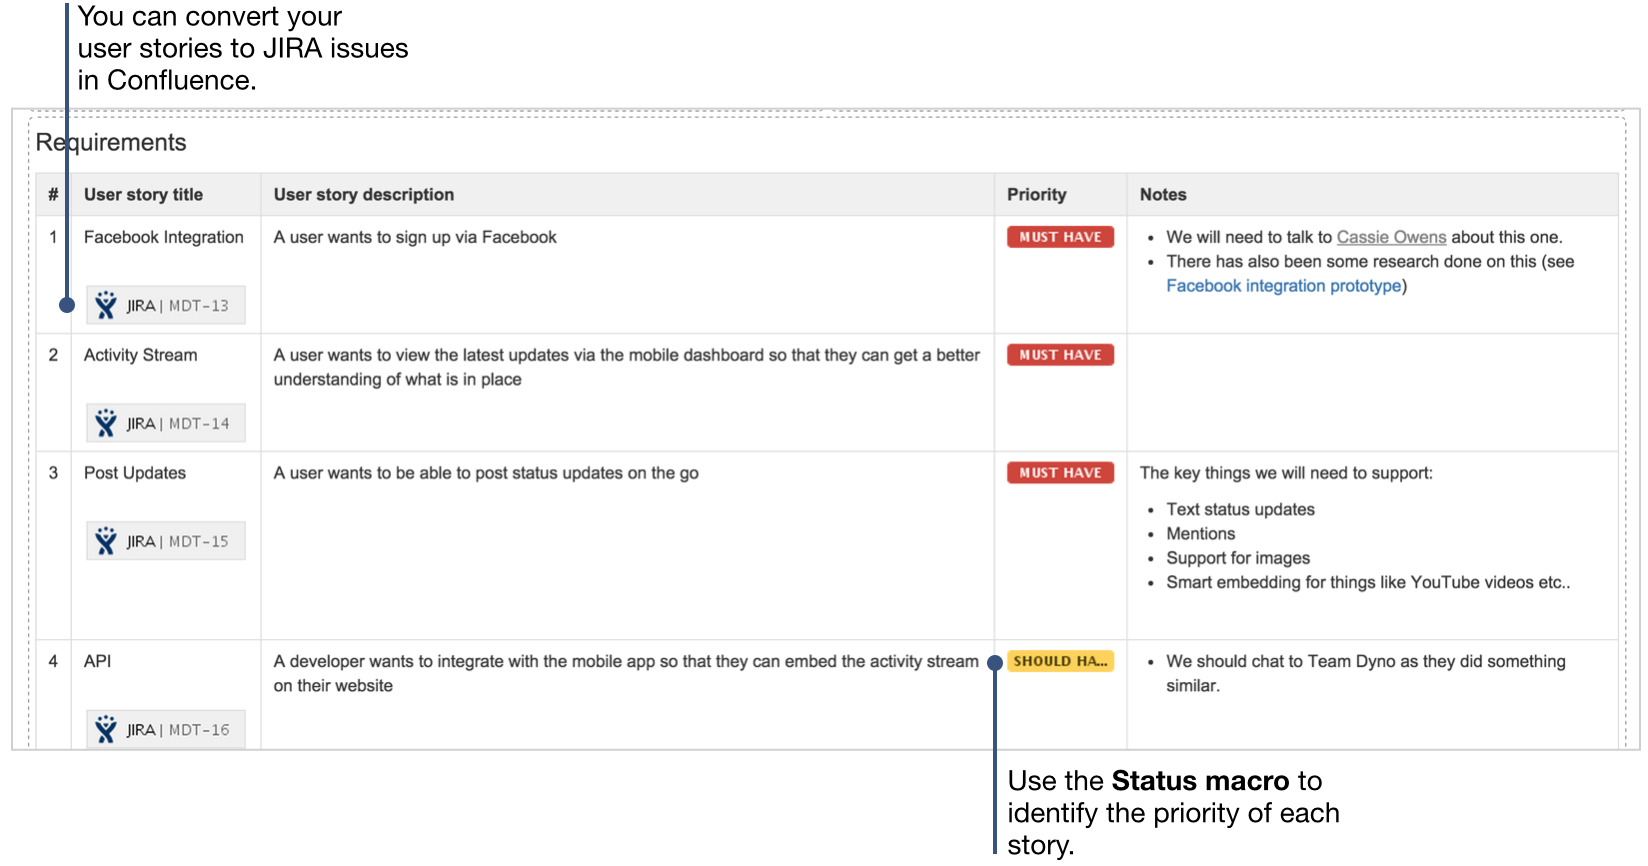 api documentation template word - how to document product requirements in confluence